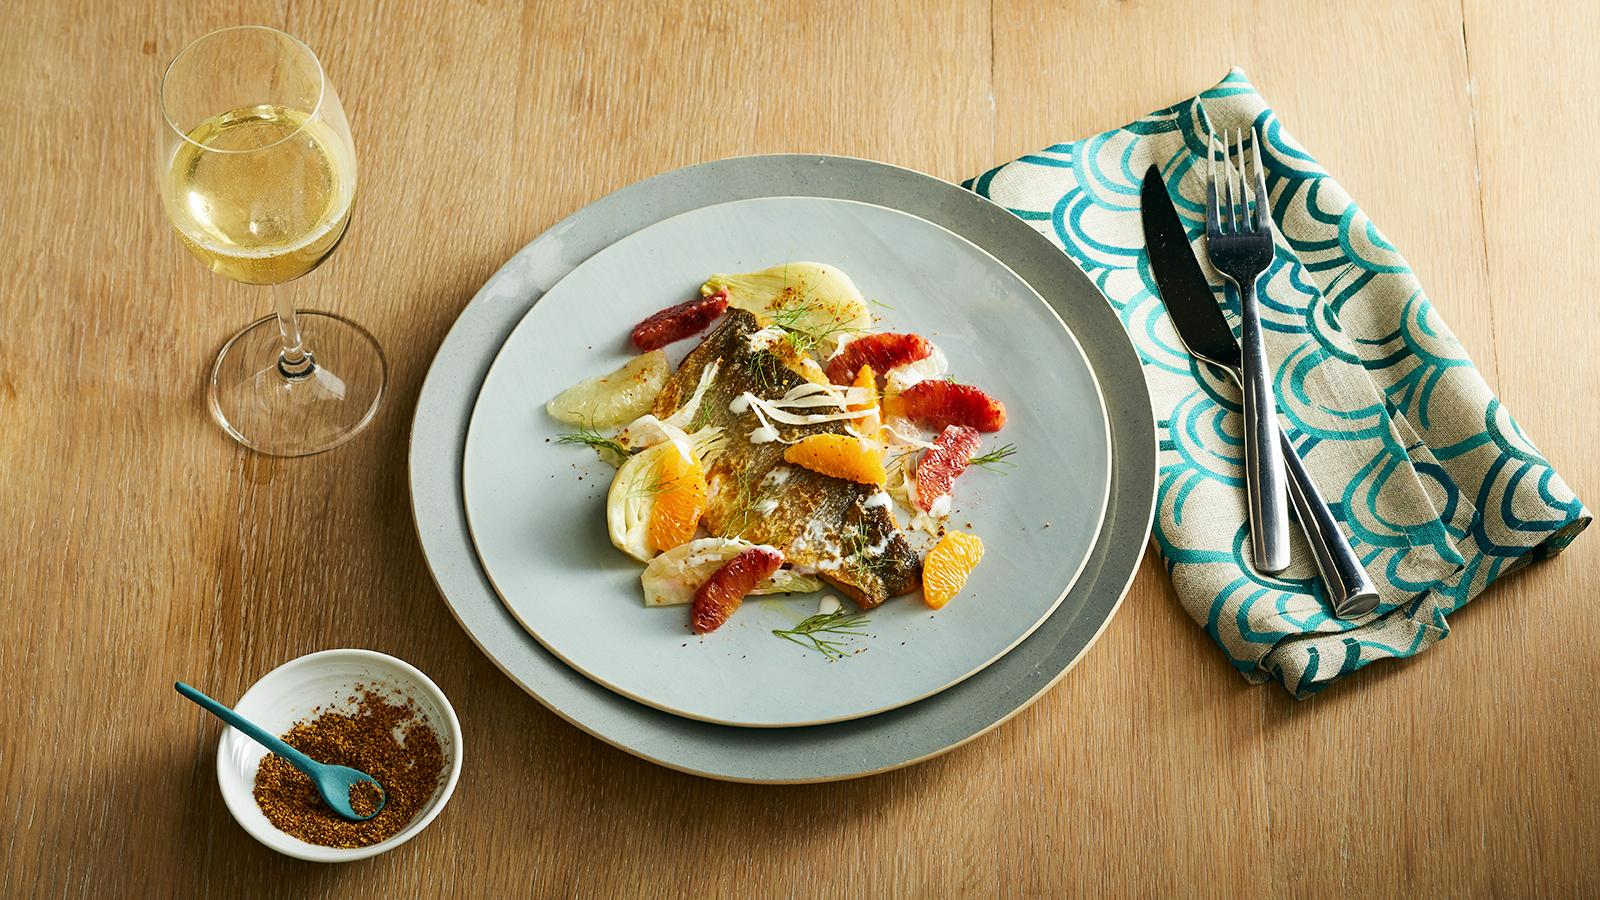 Perfect Match Recipe: Seared Branzino with Citrus